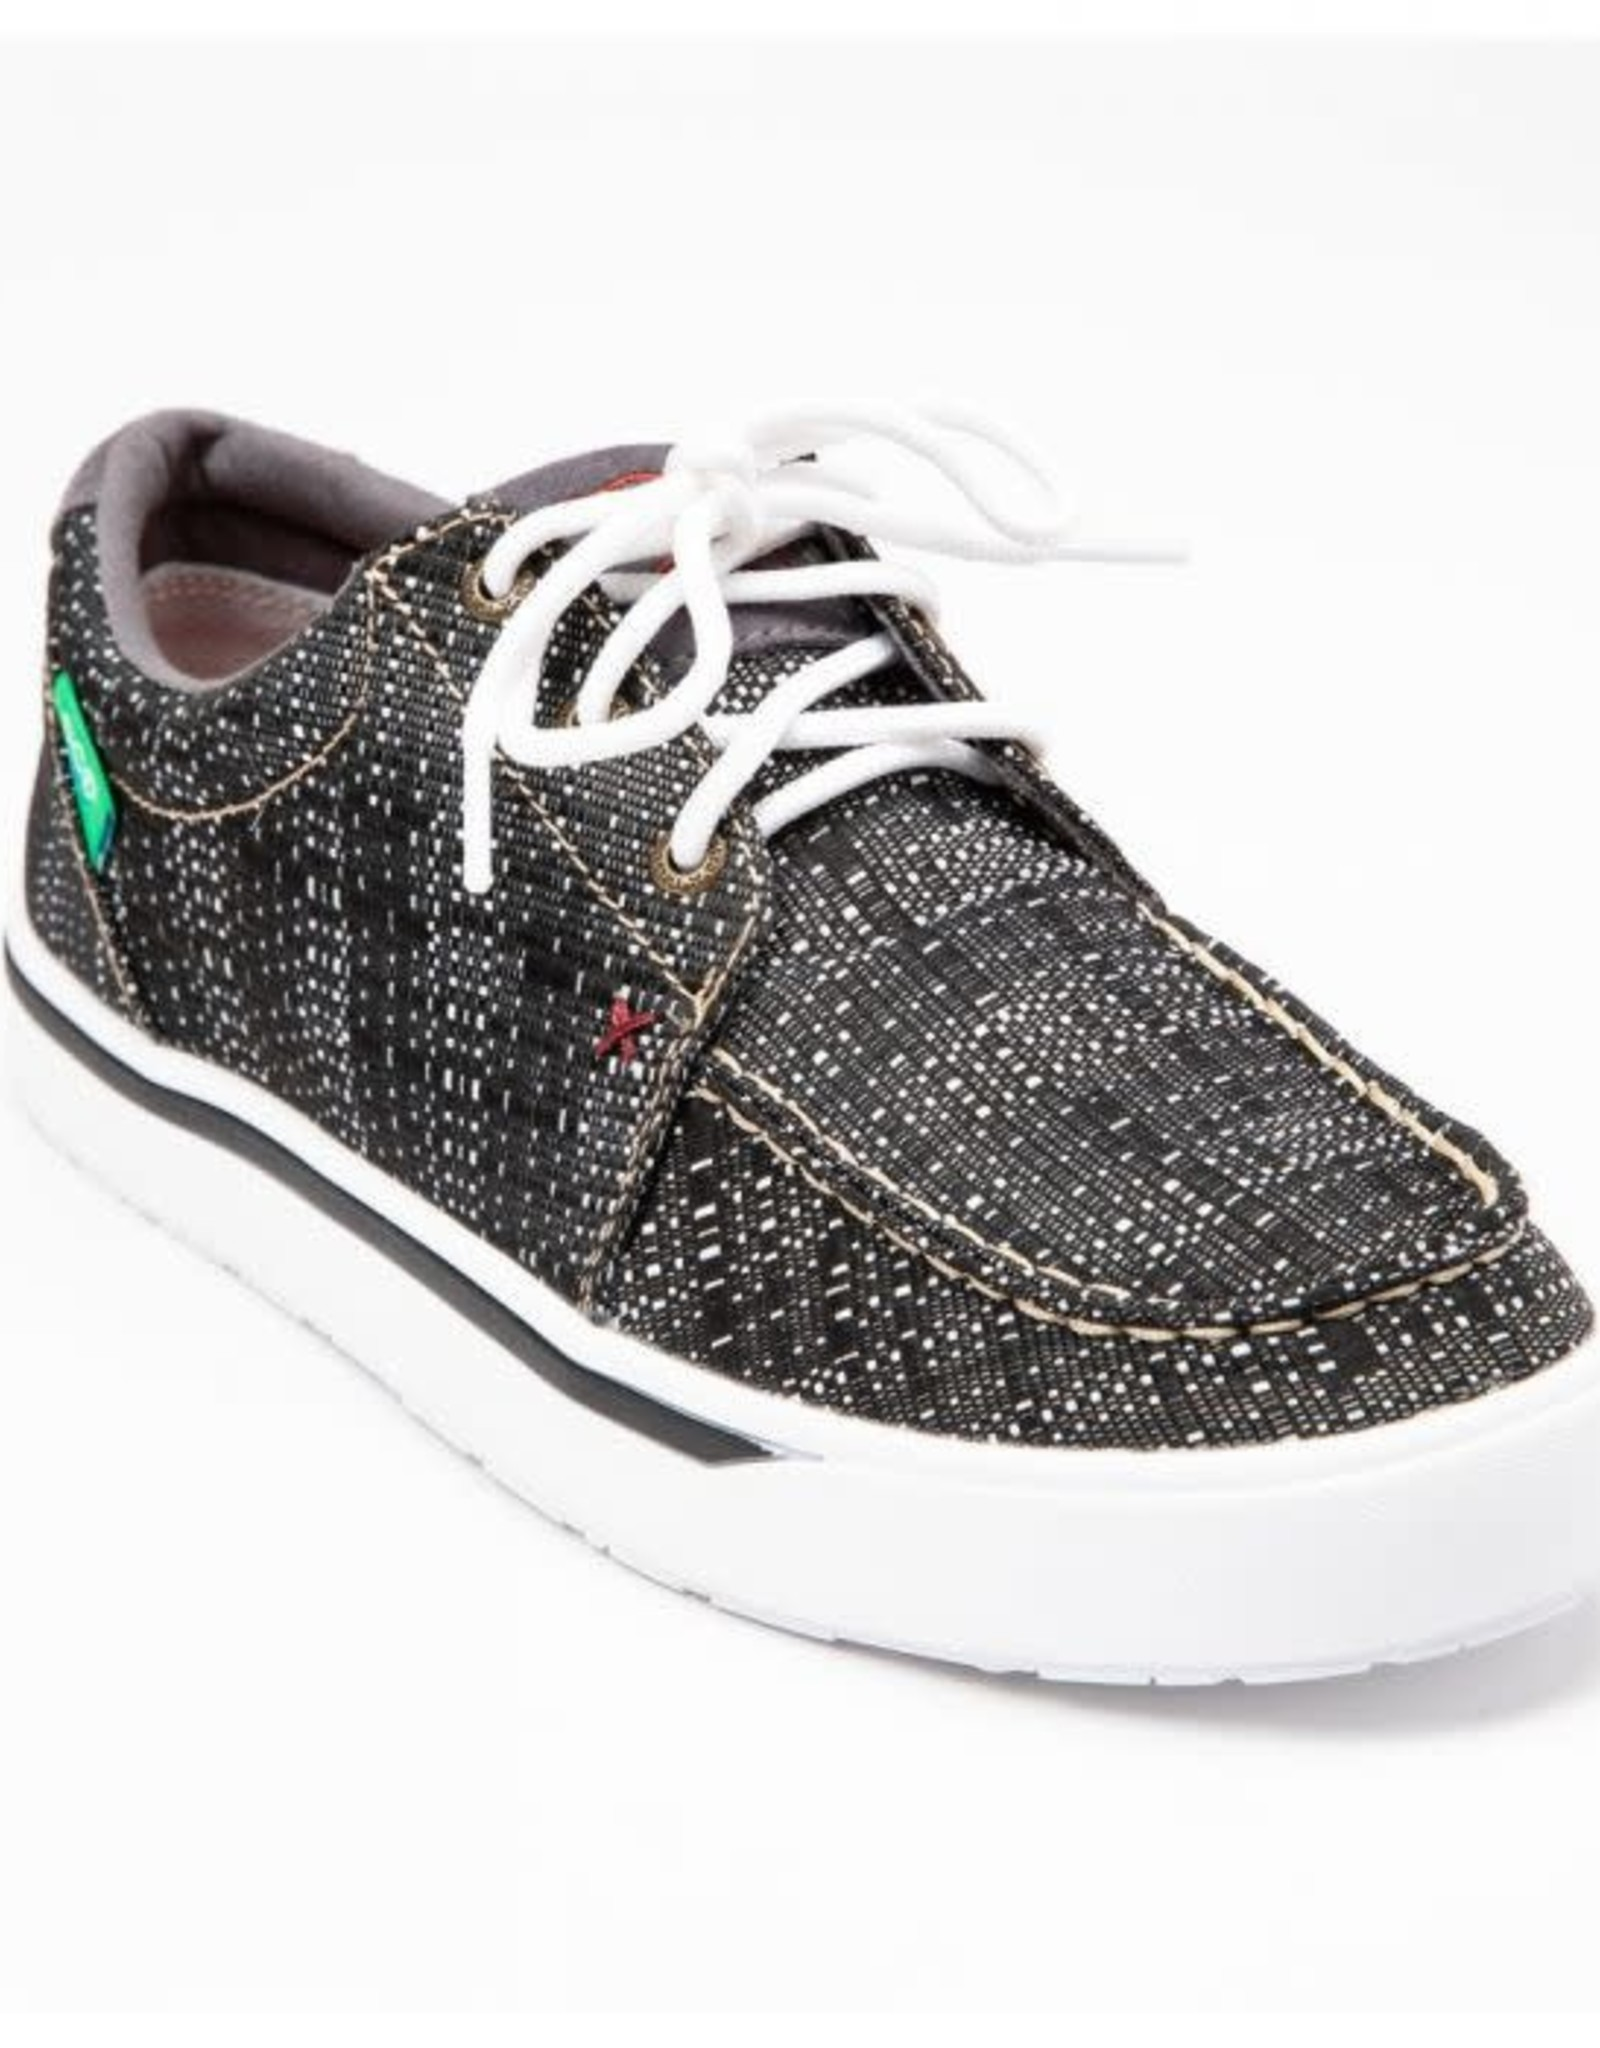 SHOE TWISTED X MNS BLK/WHT CASUAL C MCA0033